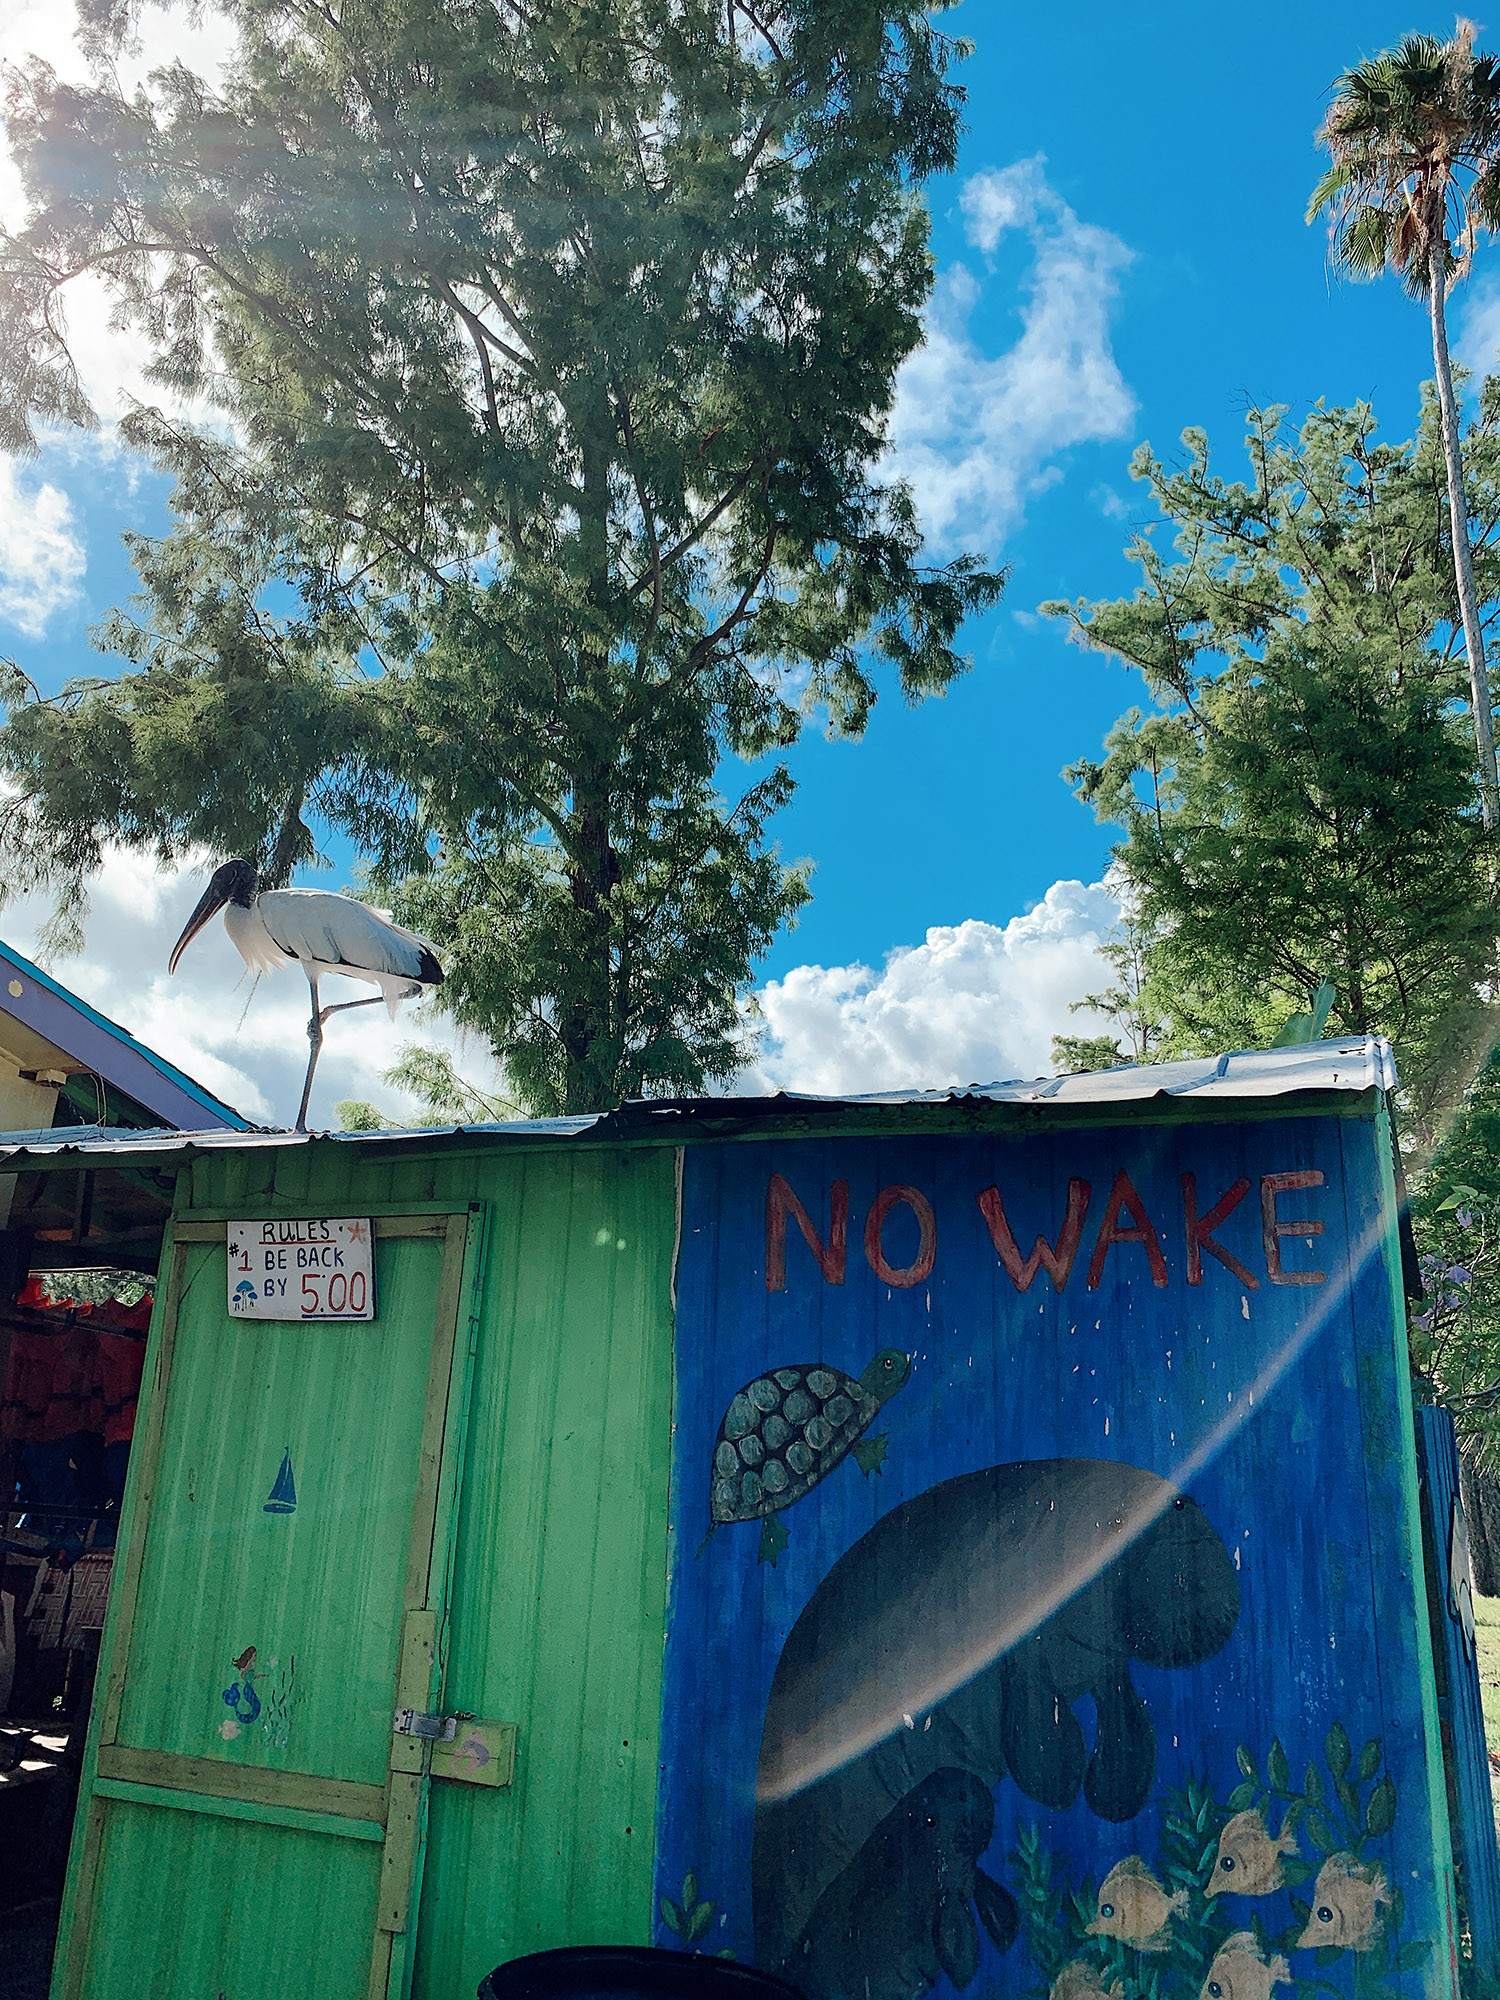 Tips for an Amazing Weeki Wachee Kayaking Florida Staycation. Visit Florida Travel ideas from top lifestyle blogger Tabitha Blue of Fresh Mommy Blog. | Weeki Wachee Kayaking by popular Florida blog, Fresh Mommy Blog: image of a metal shack with a manatee and sea turtle painted on it.